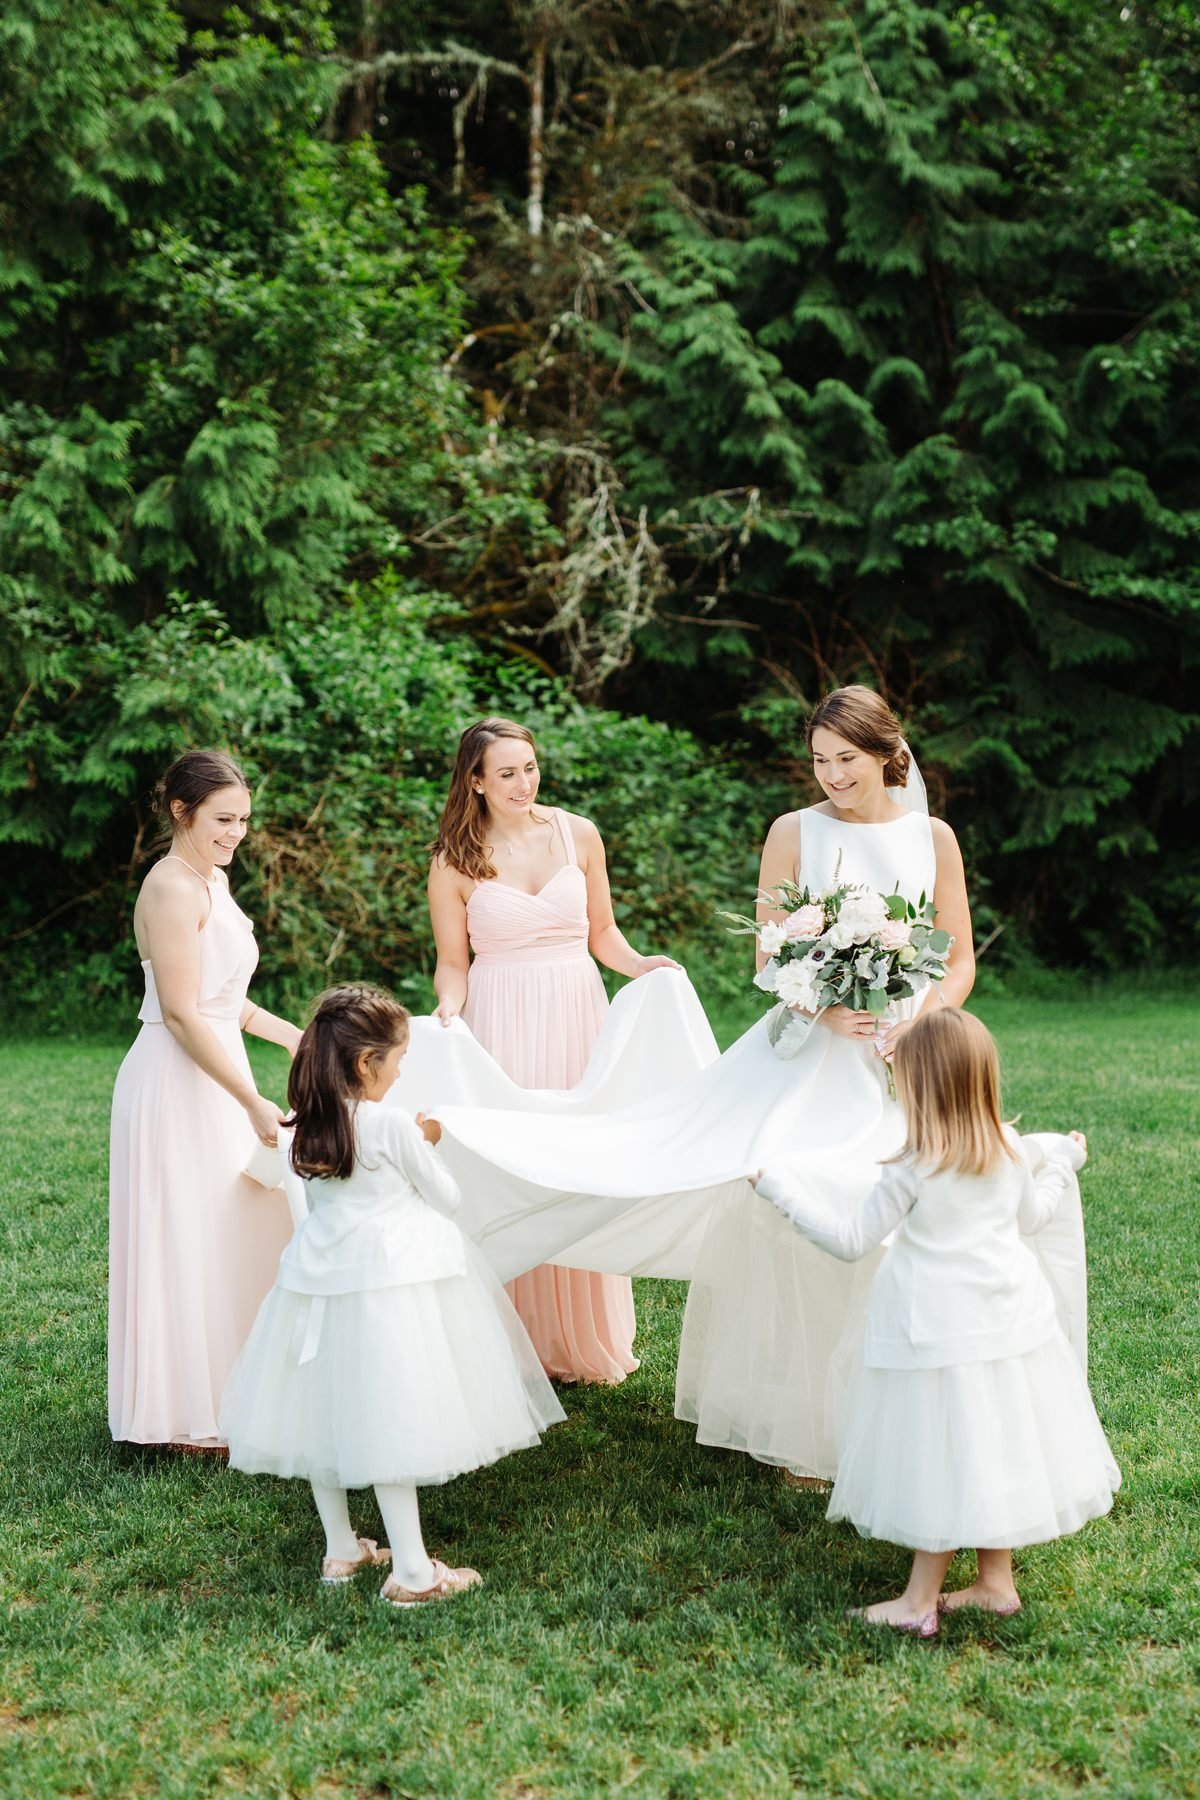 islandwood-bainbridge-island-wedding-photographer-seattle-cameron-zegers-0194